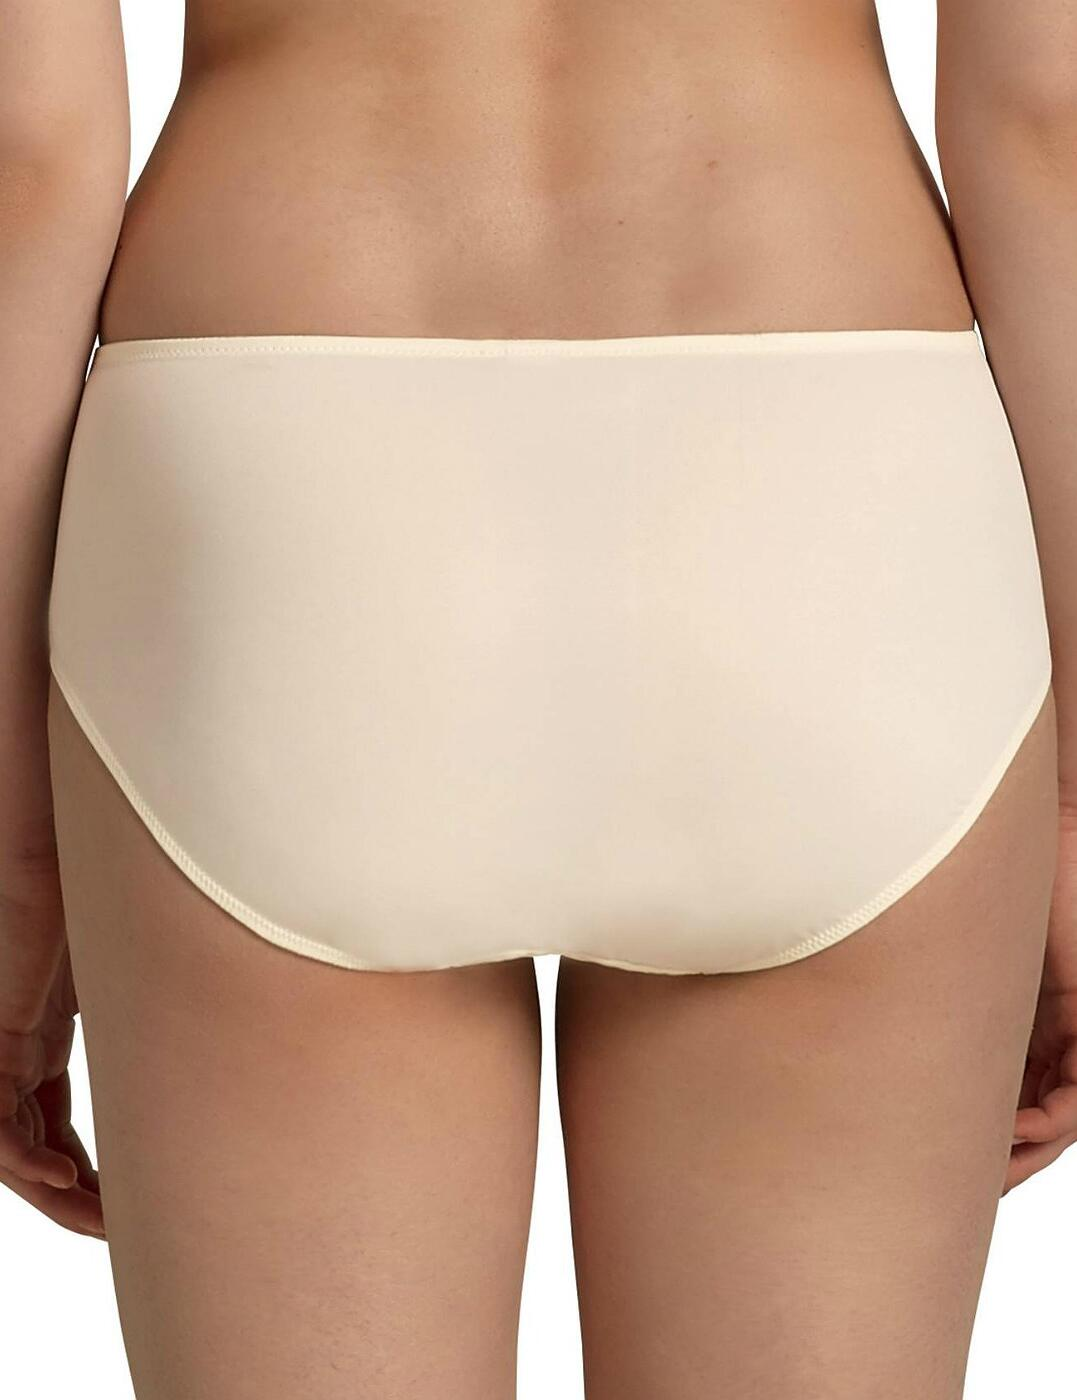 Anita-Comfort-Valentina-High-Waisted-Briefs-1428-Womens-Knickers-Champagne thumbnail 3